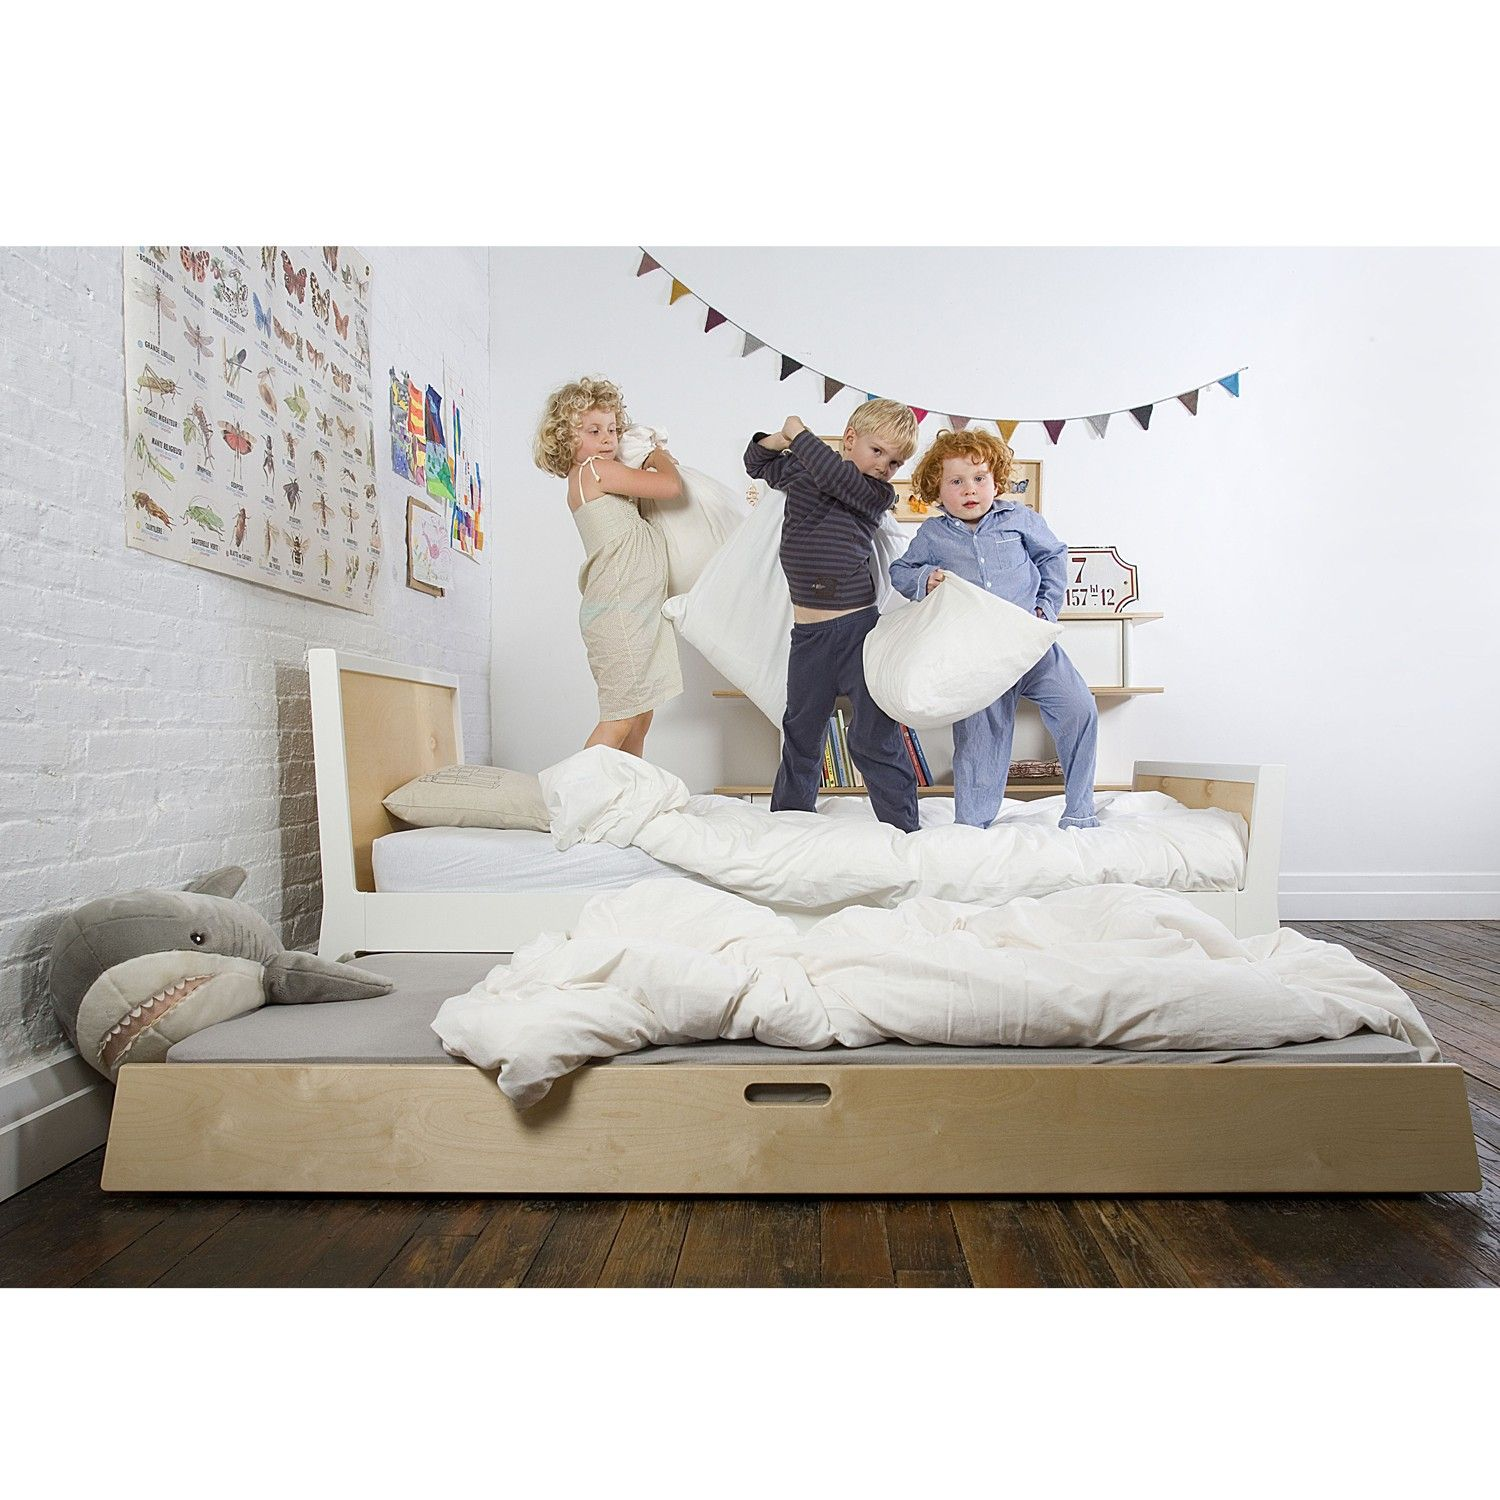 The versatile Sparrow Trundle Bed is a useful addition to